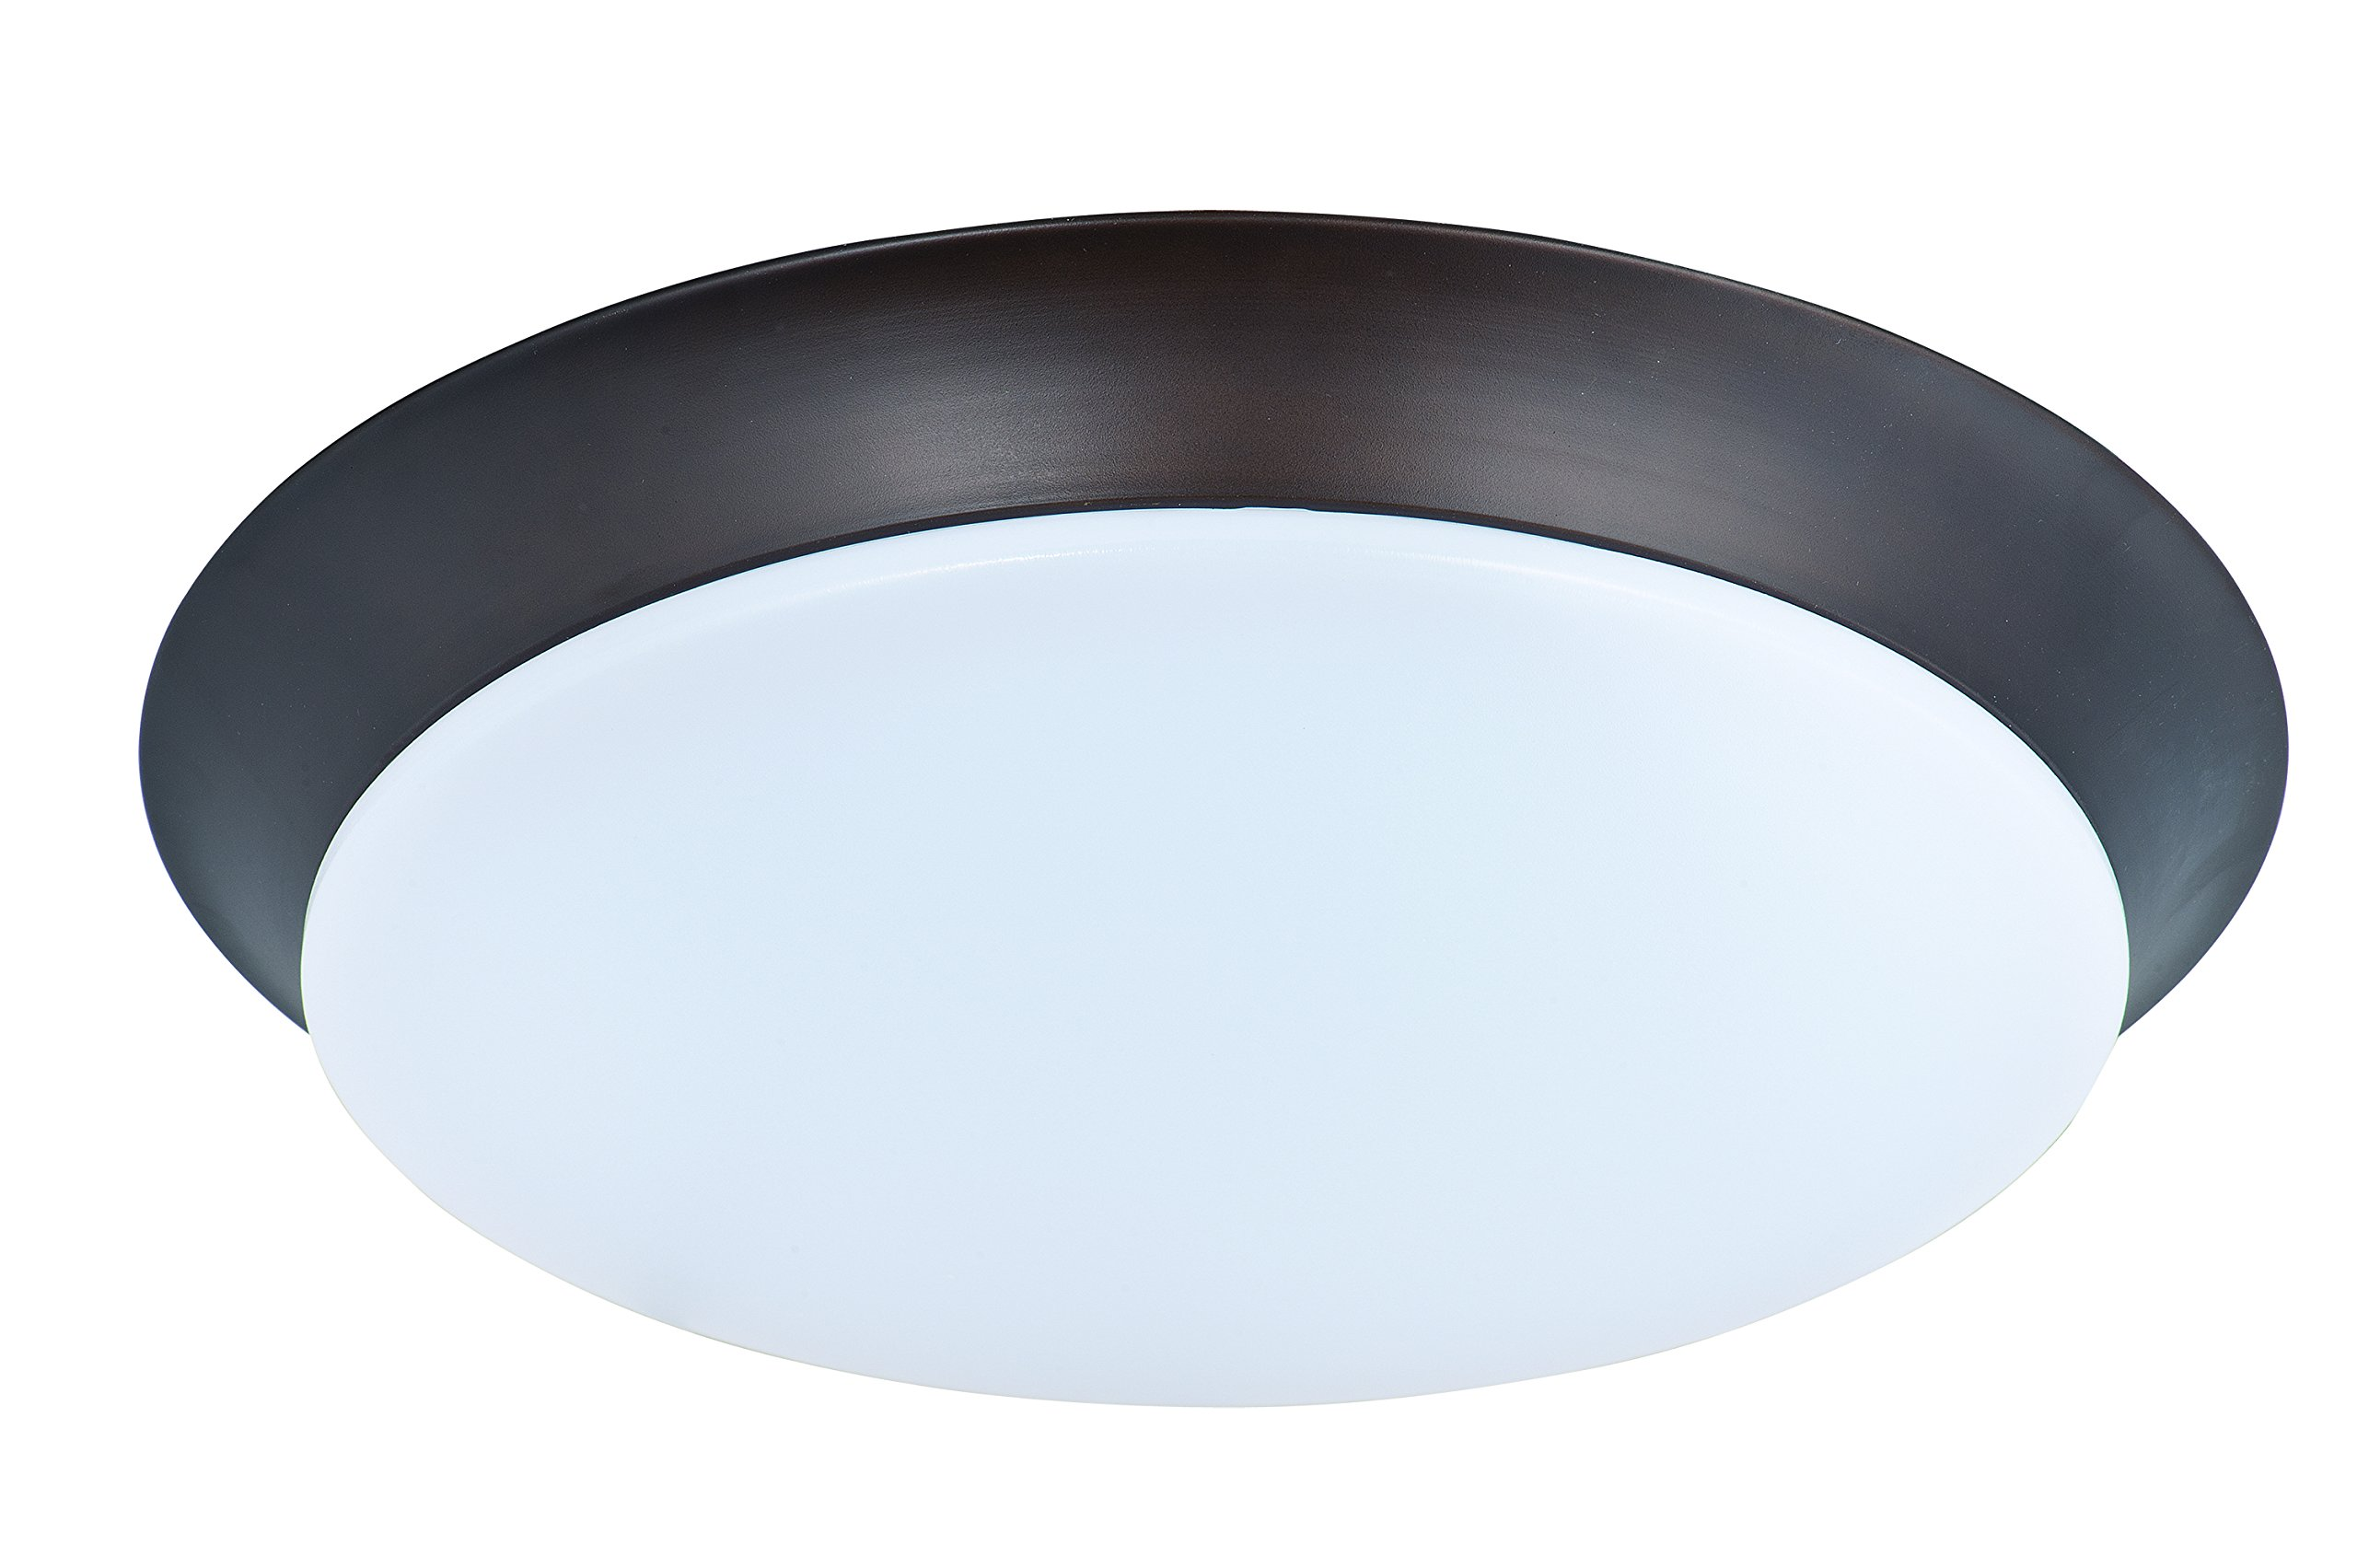 Maxim 87595WTBZ Profile EE LED Flush Mount, Bronze Finish, White Glass, PCB LED Bulb , 60W Max., Dry Safety Rating, Standard Dimmable, Shade Material, 6048 Rated Lumens